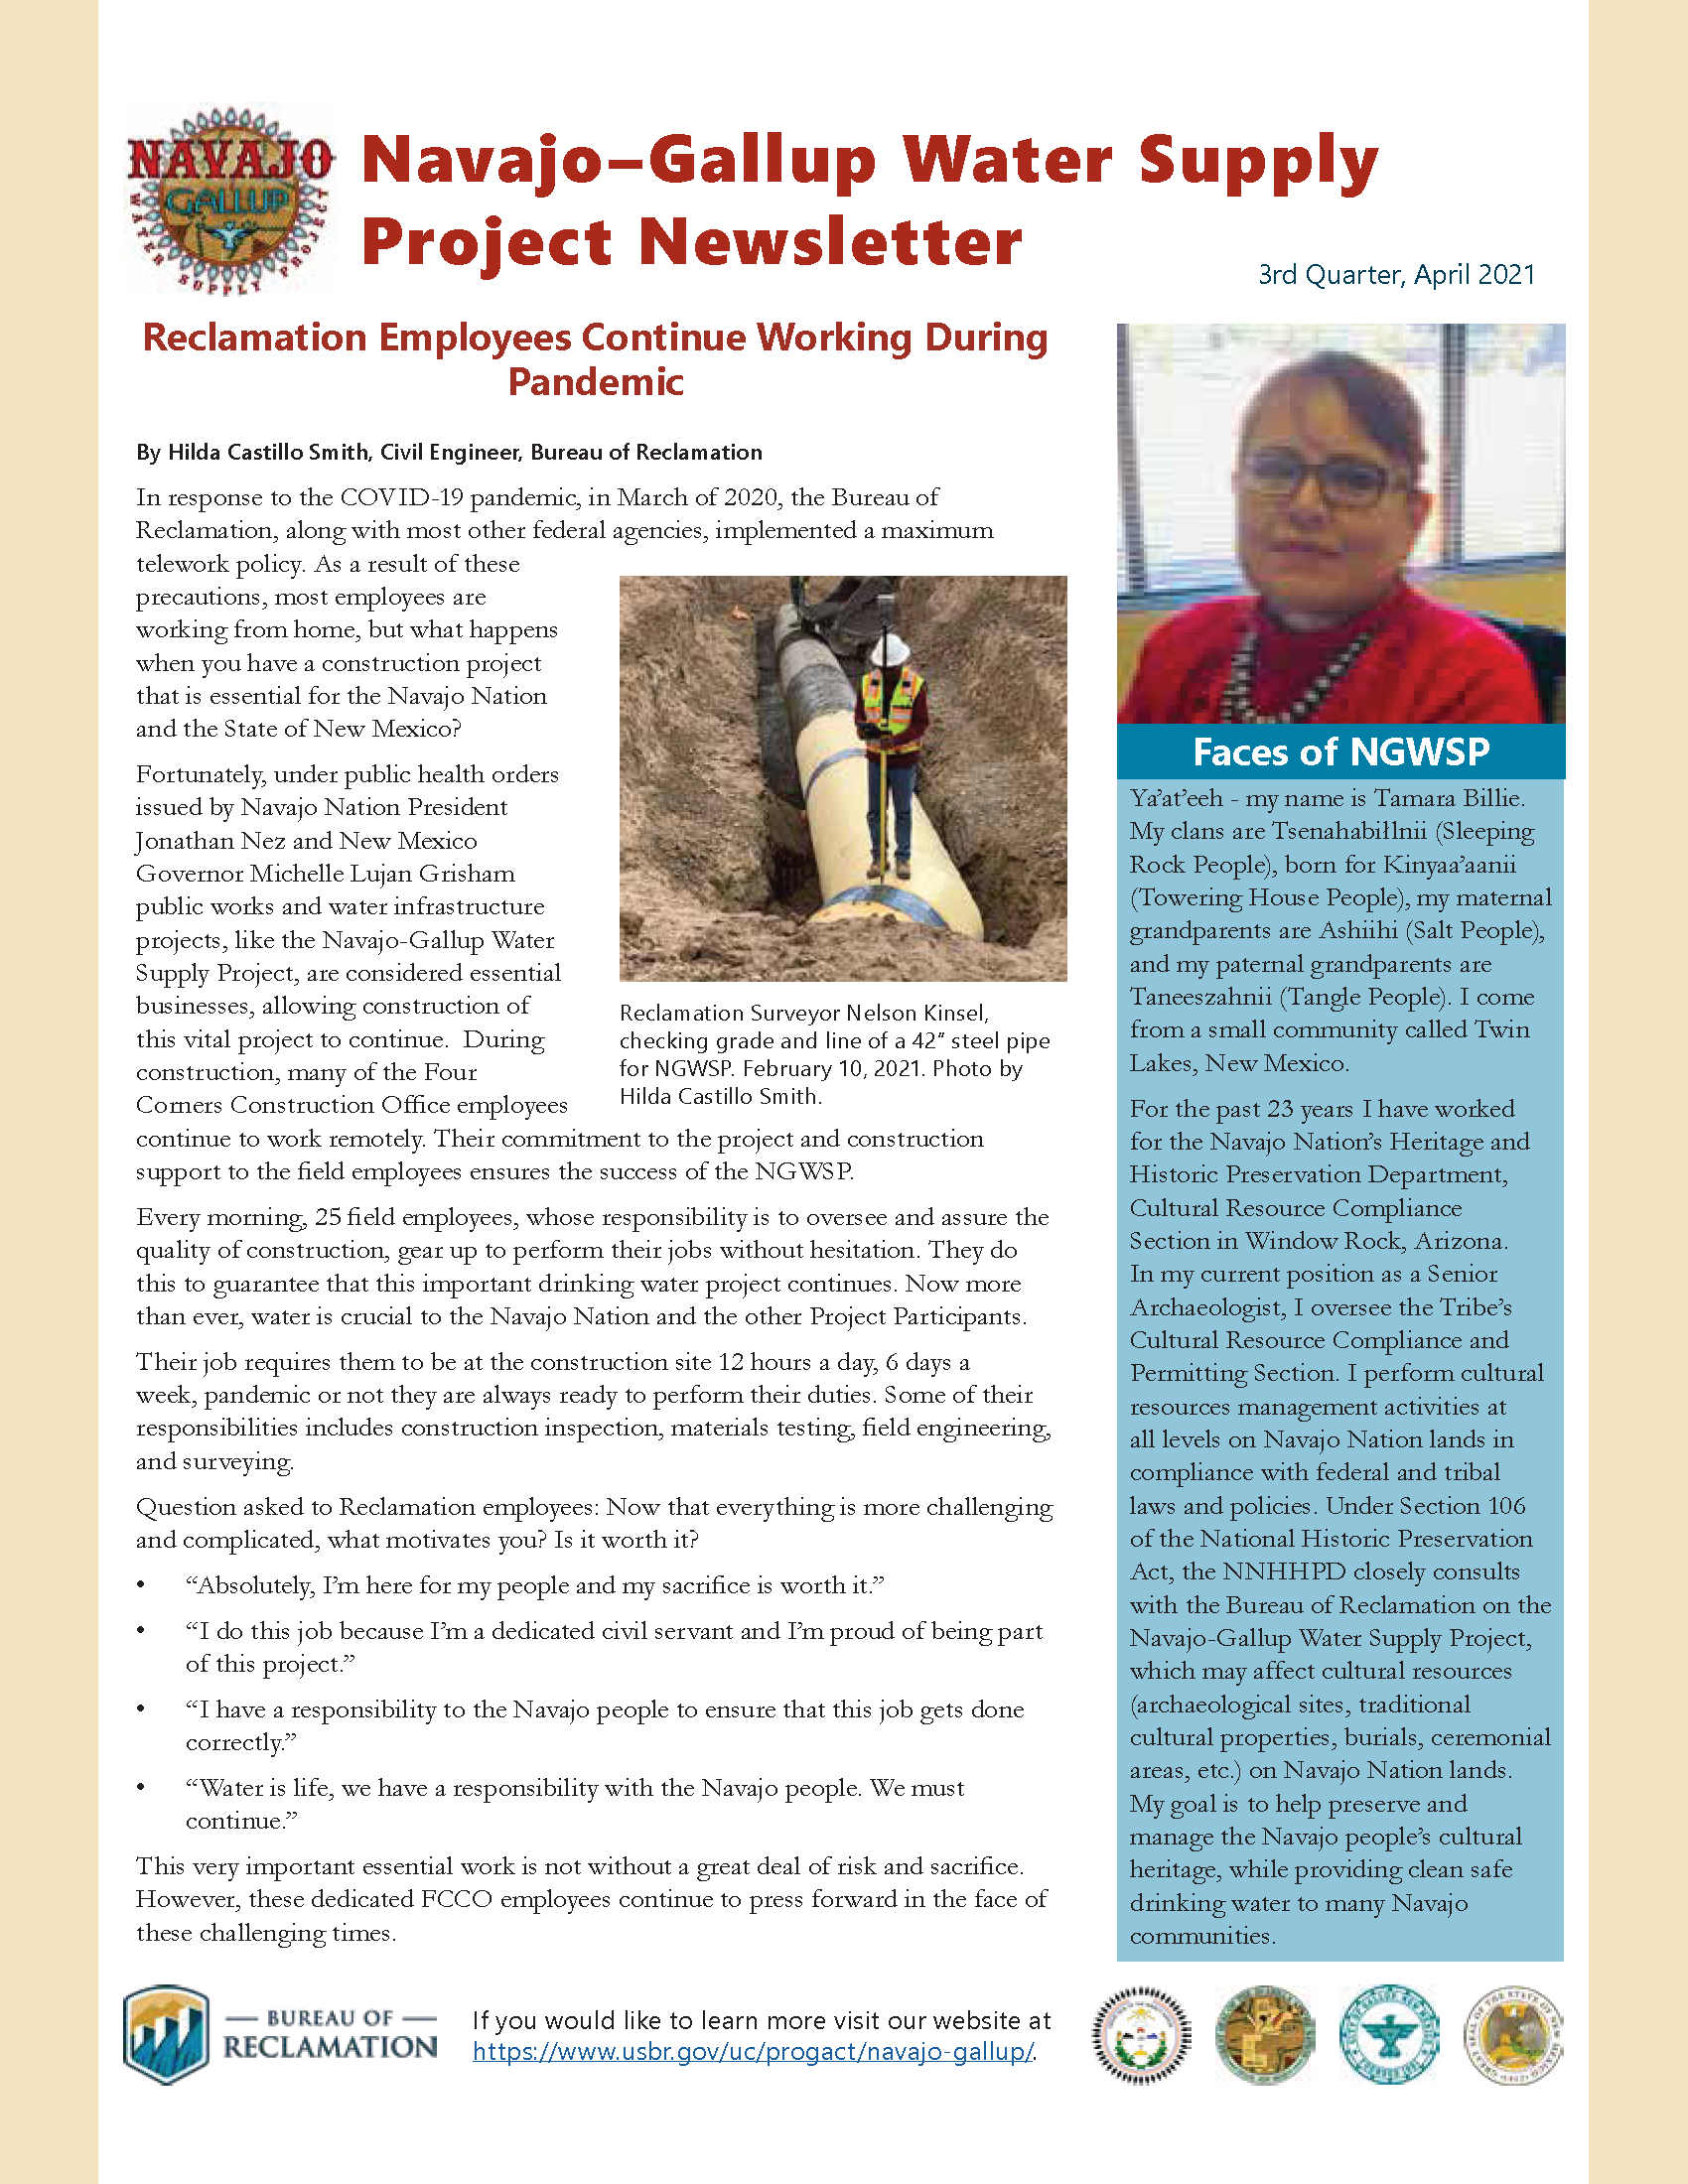 Navajo-Gallup Water Supply Project Newsletter